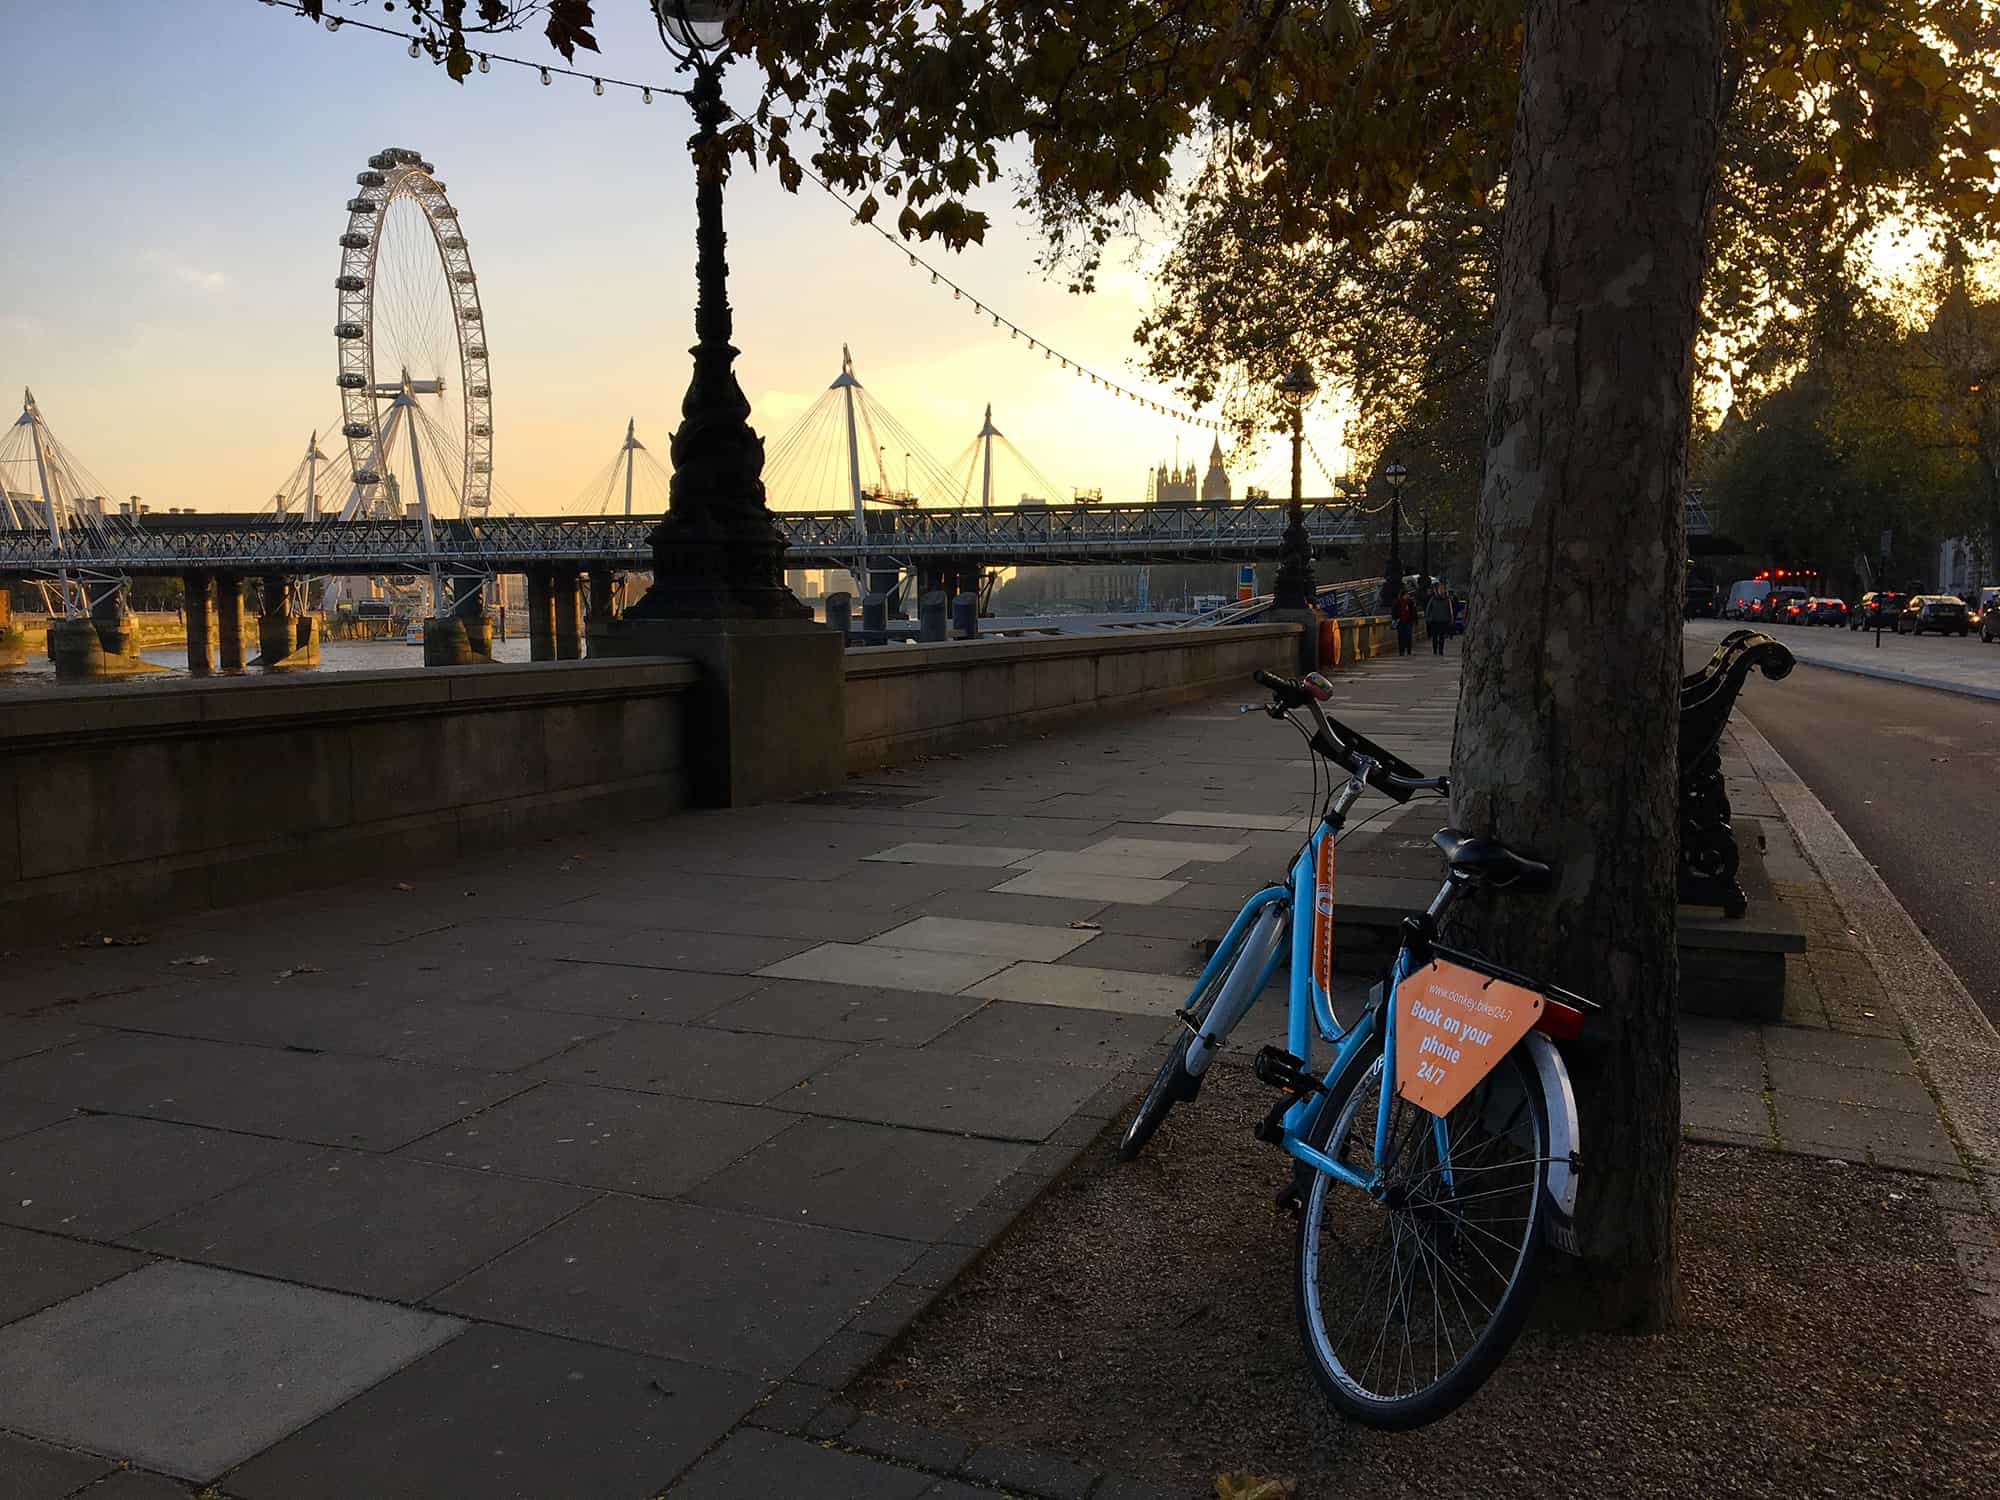 Bicycle by River Thames in London, London Eye in the background